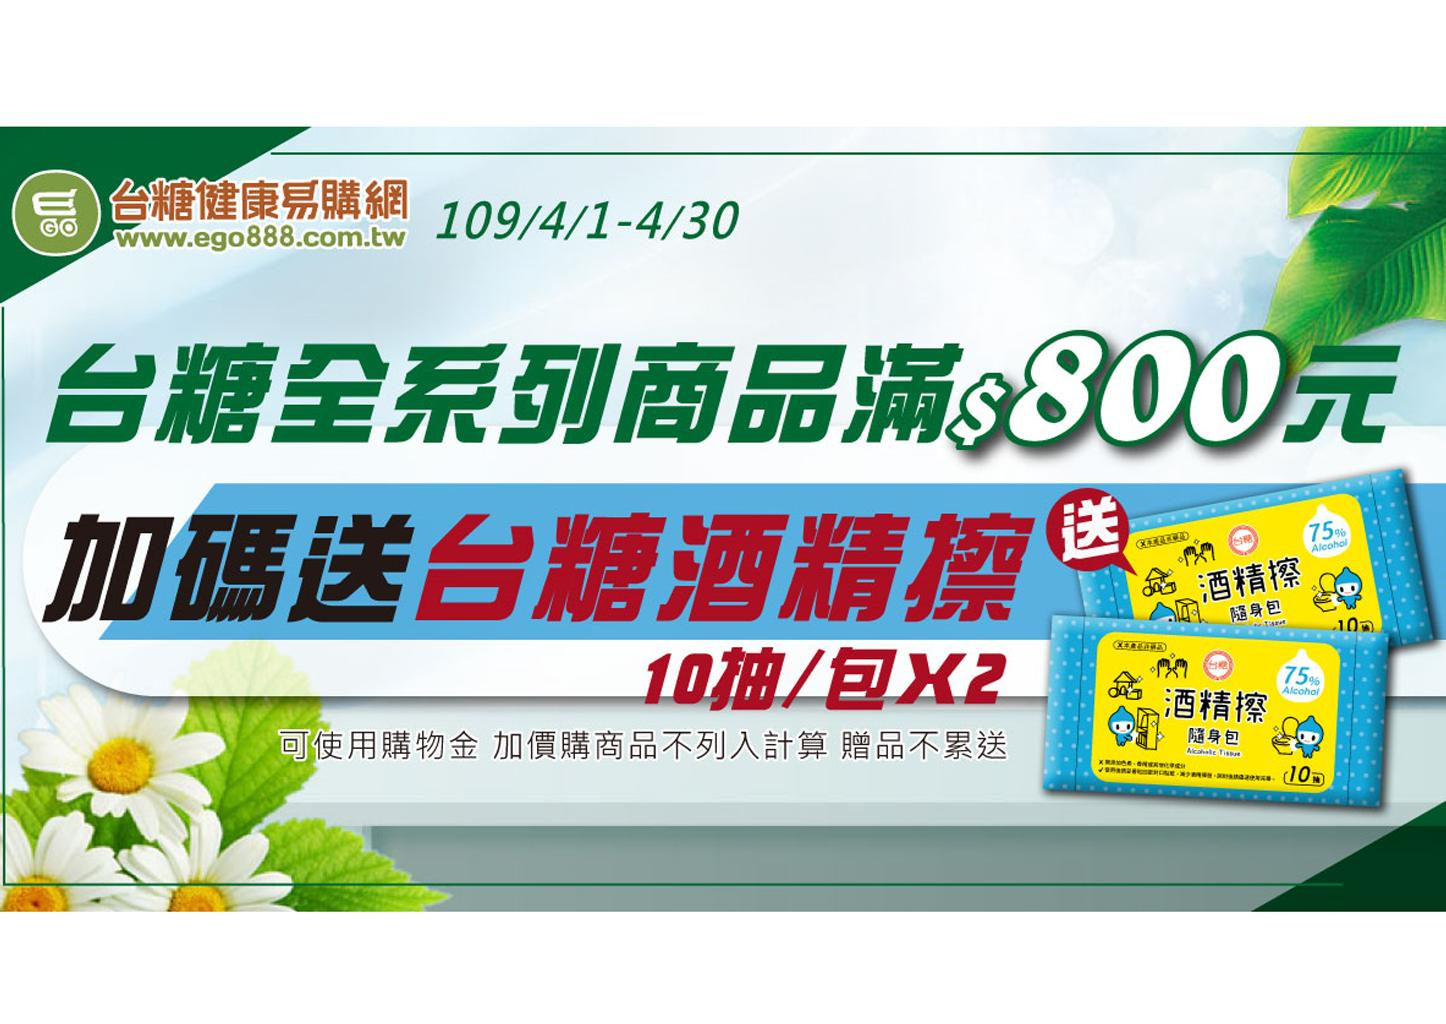 TSC launched a promotion campaign that shopping TSC products at Ego888 over NT$800 per purchase can get free 2 packs of TSC alcohol wipes.